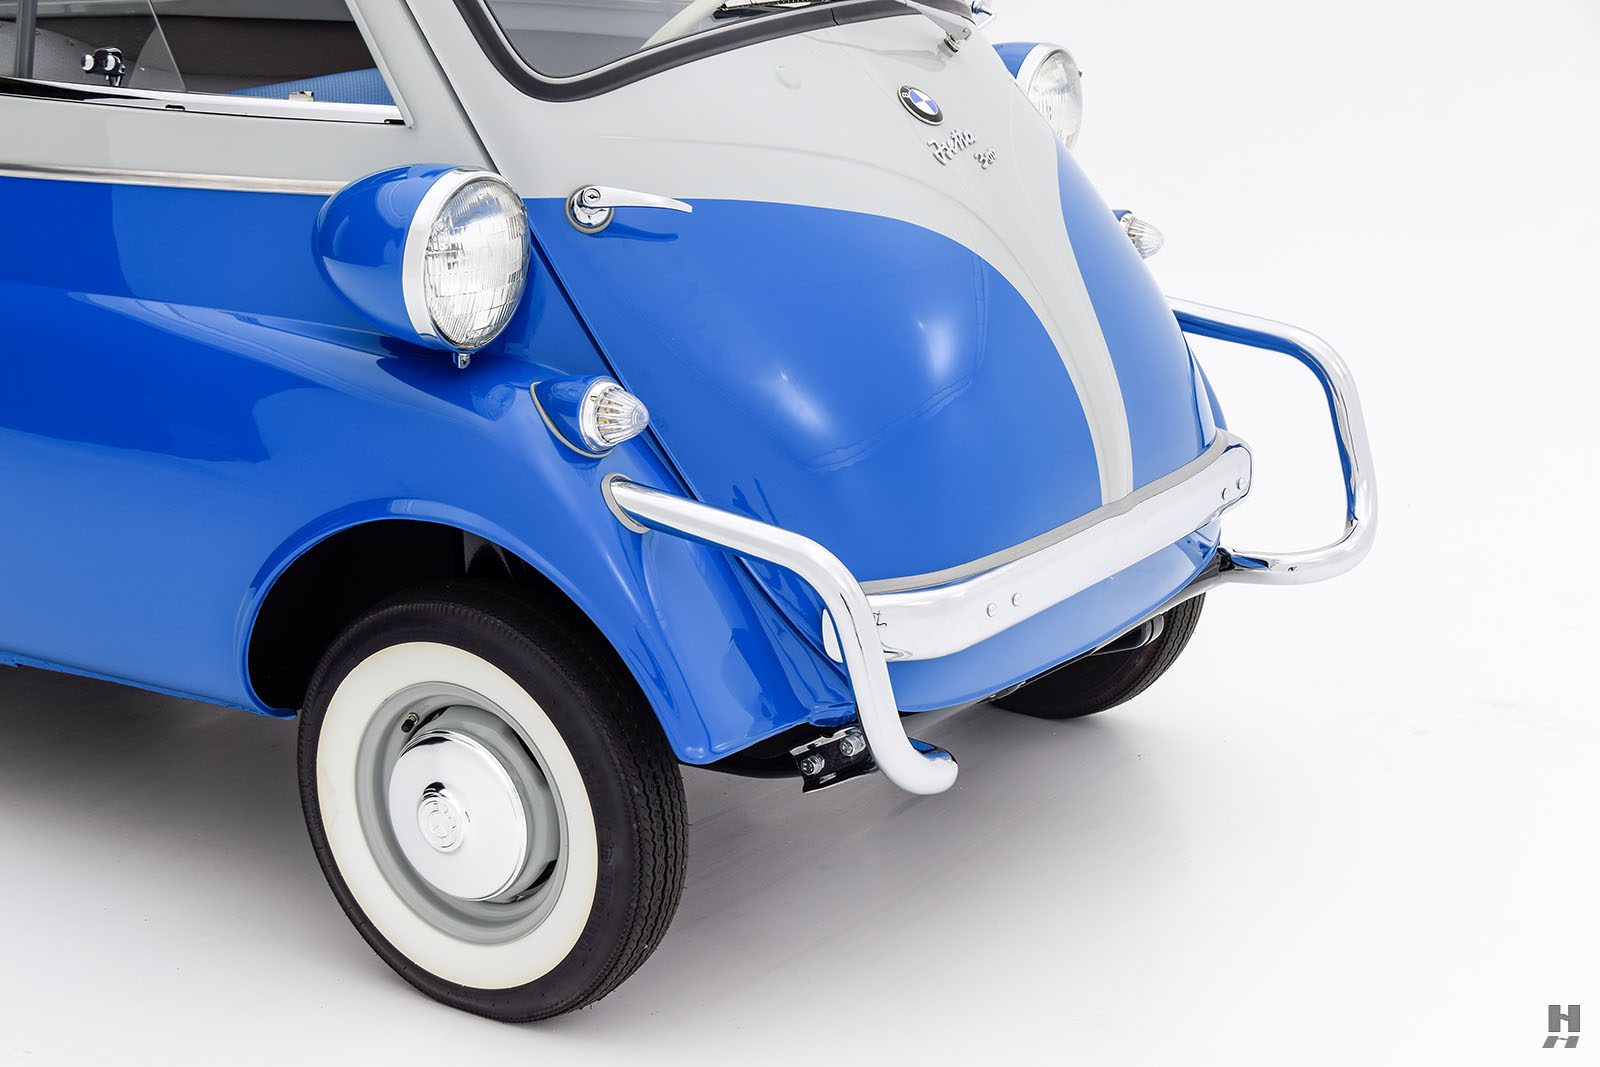 1958 BMW Isetta Coupe For Sale | Buy Classic Cars | Hyman LTD